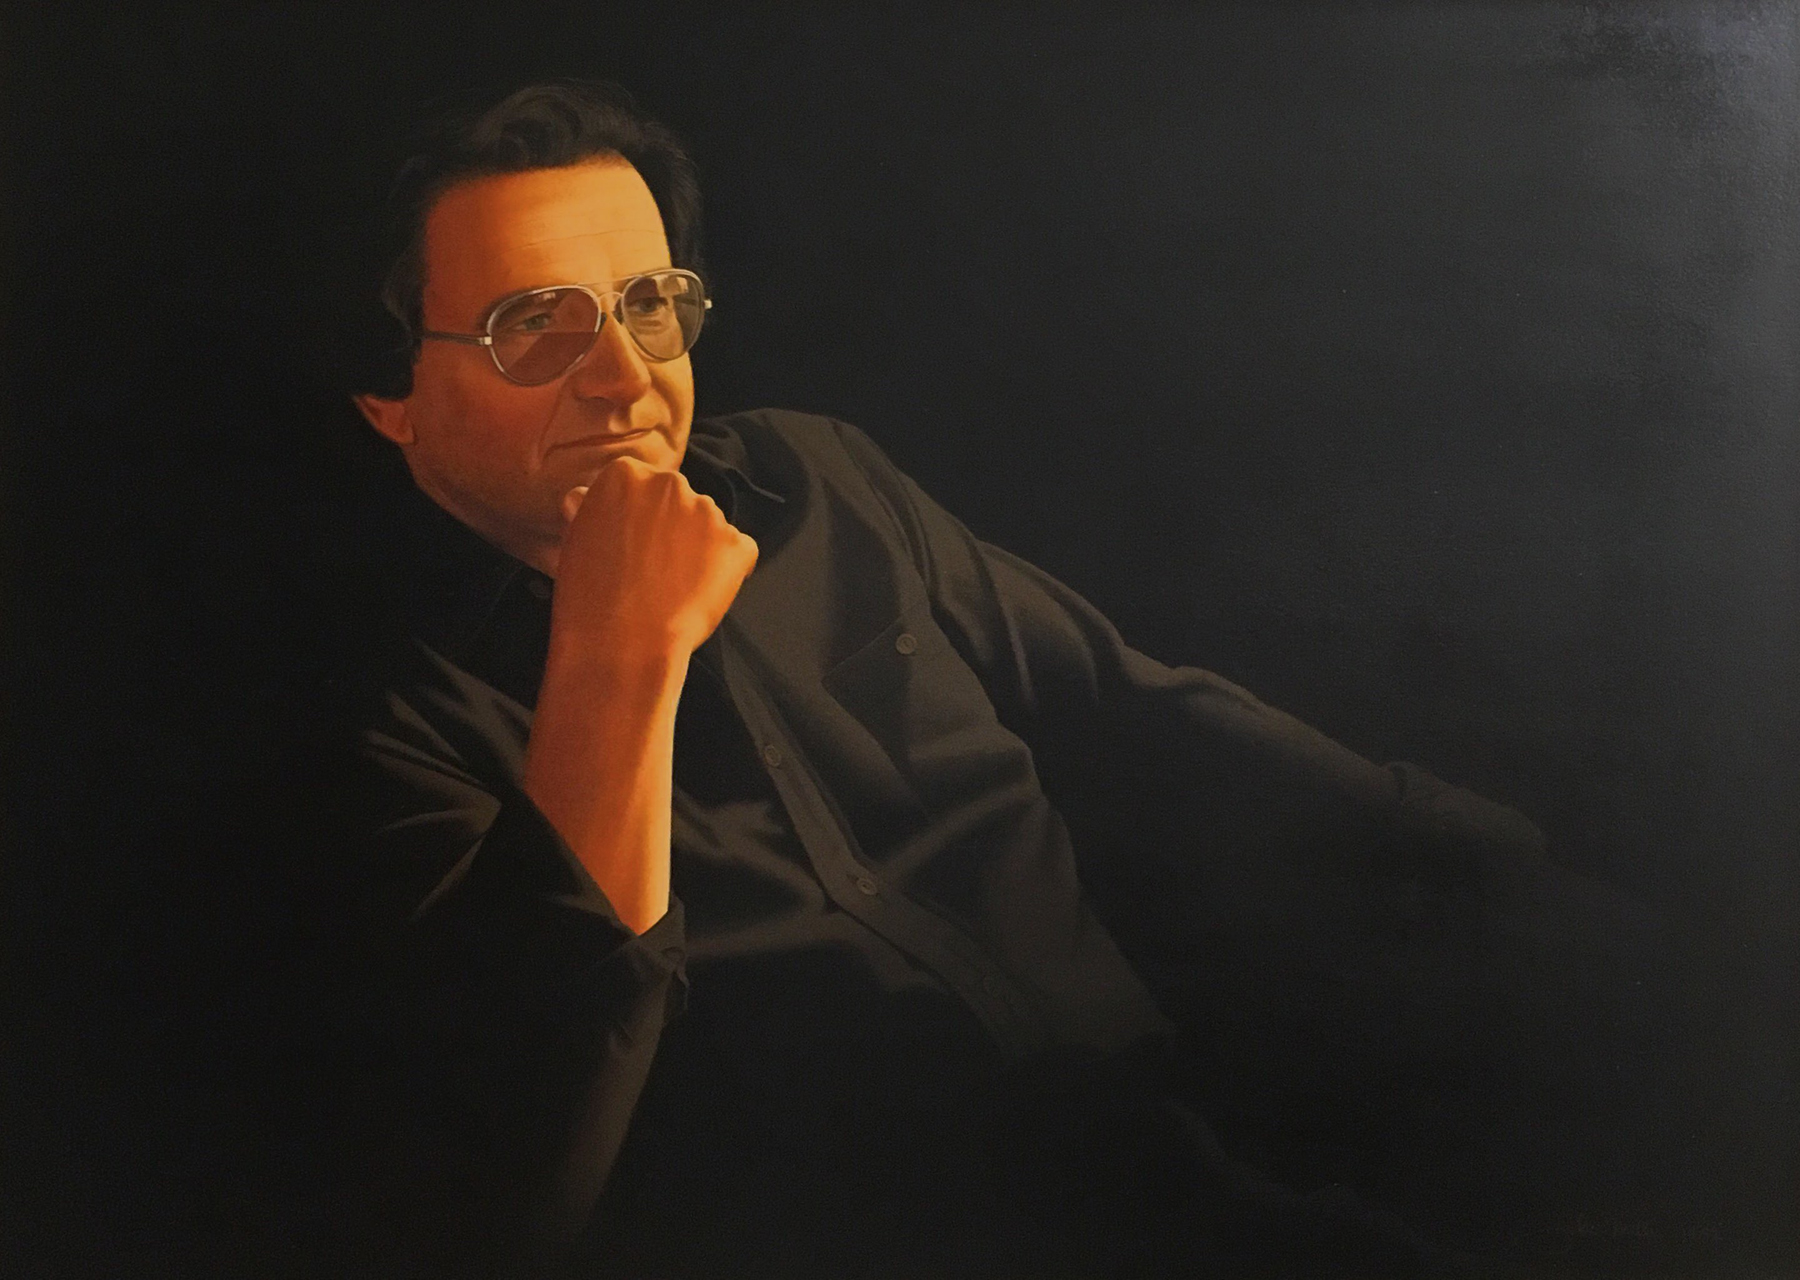 Self Portrait by John Mills, Photorealism artist and car ad illustrator as seen on American Pickers.